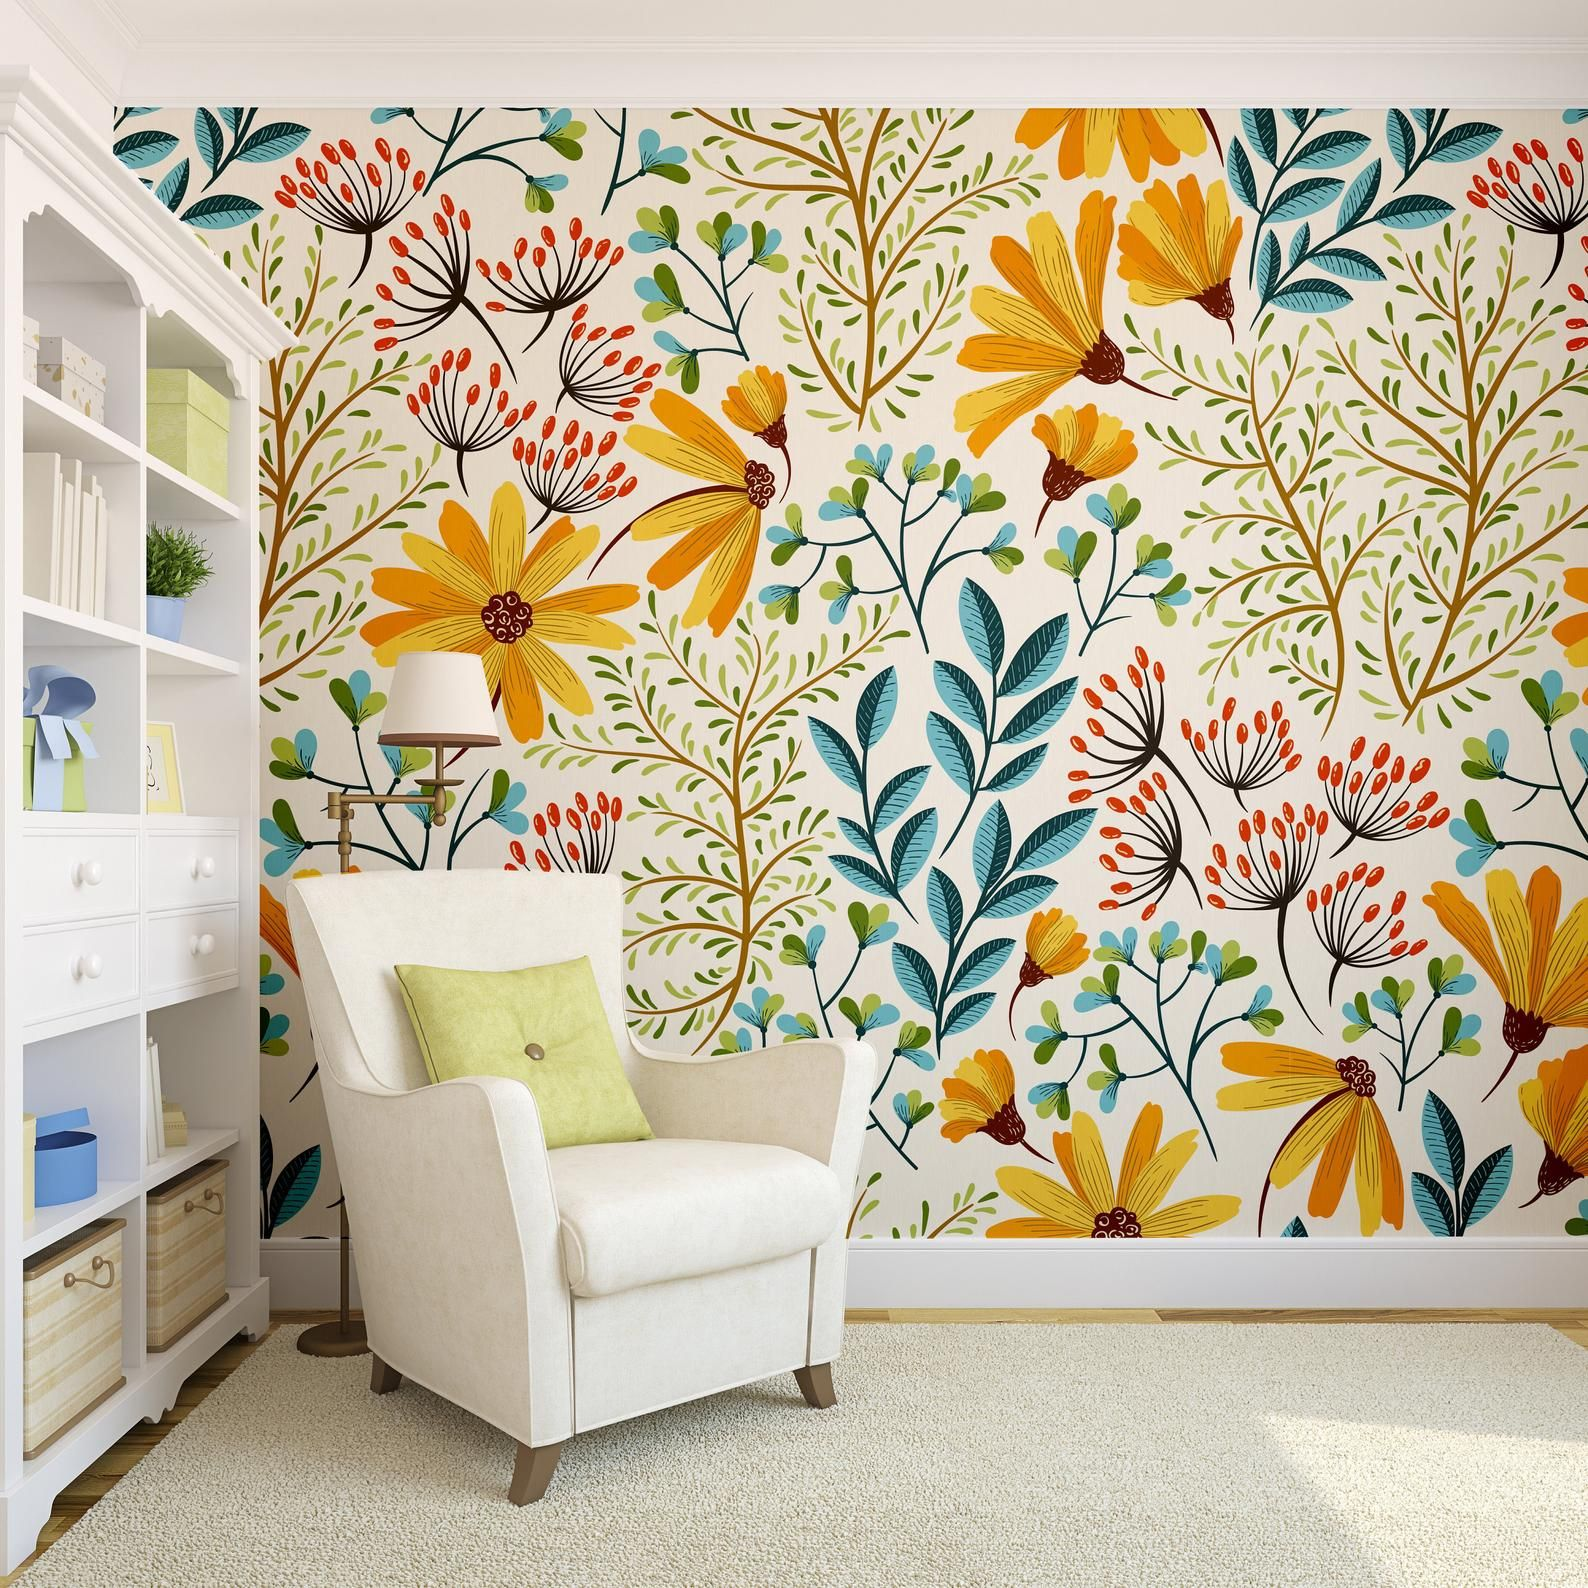 Removable Wallpaper Colorful Floral Wallpaper, Self